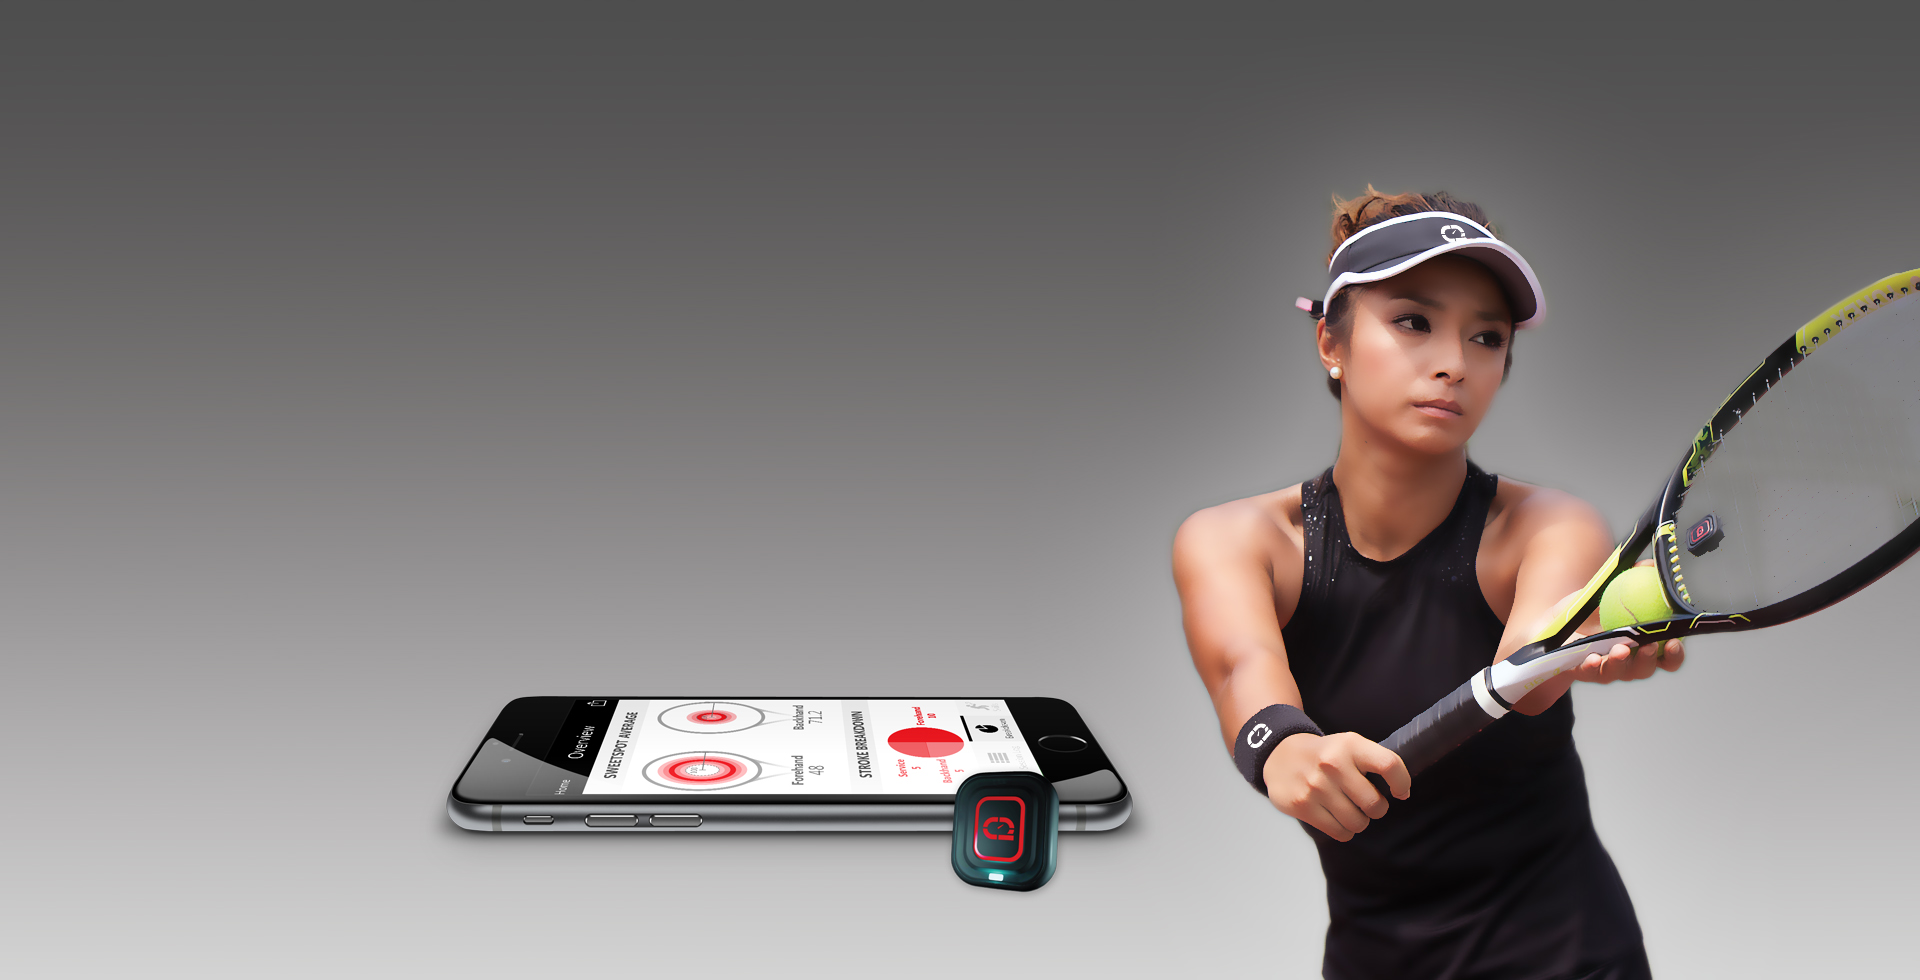 Qlipp Tennis Sensor Analyzes Strokes Of The Tennis Players